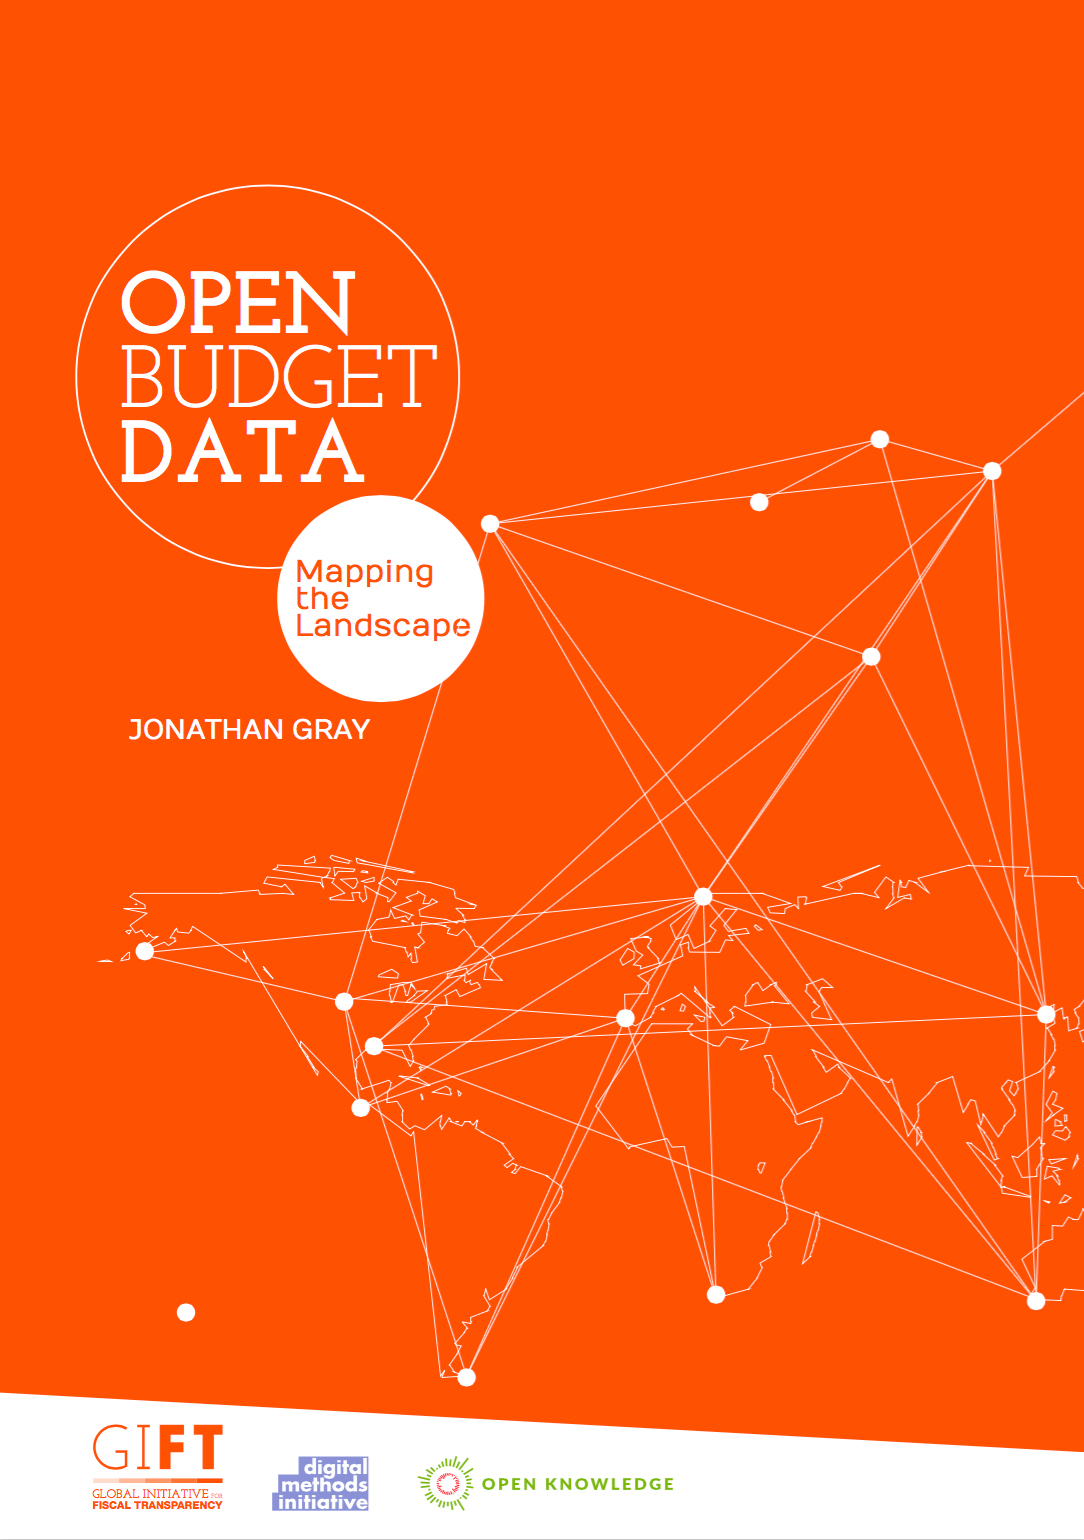 OPEN BUDGET DATA - Mapping the Landscape